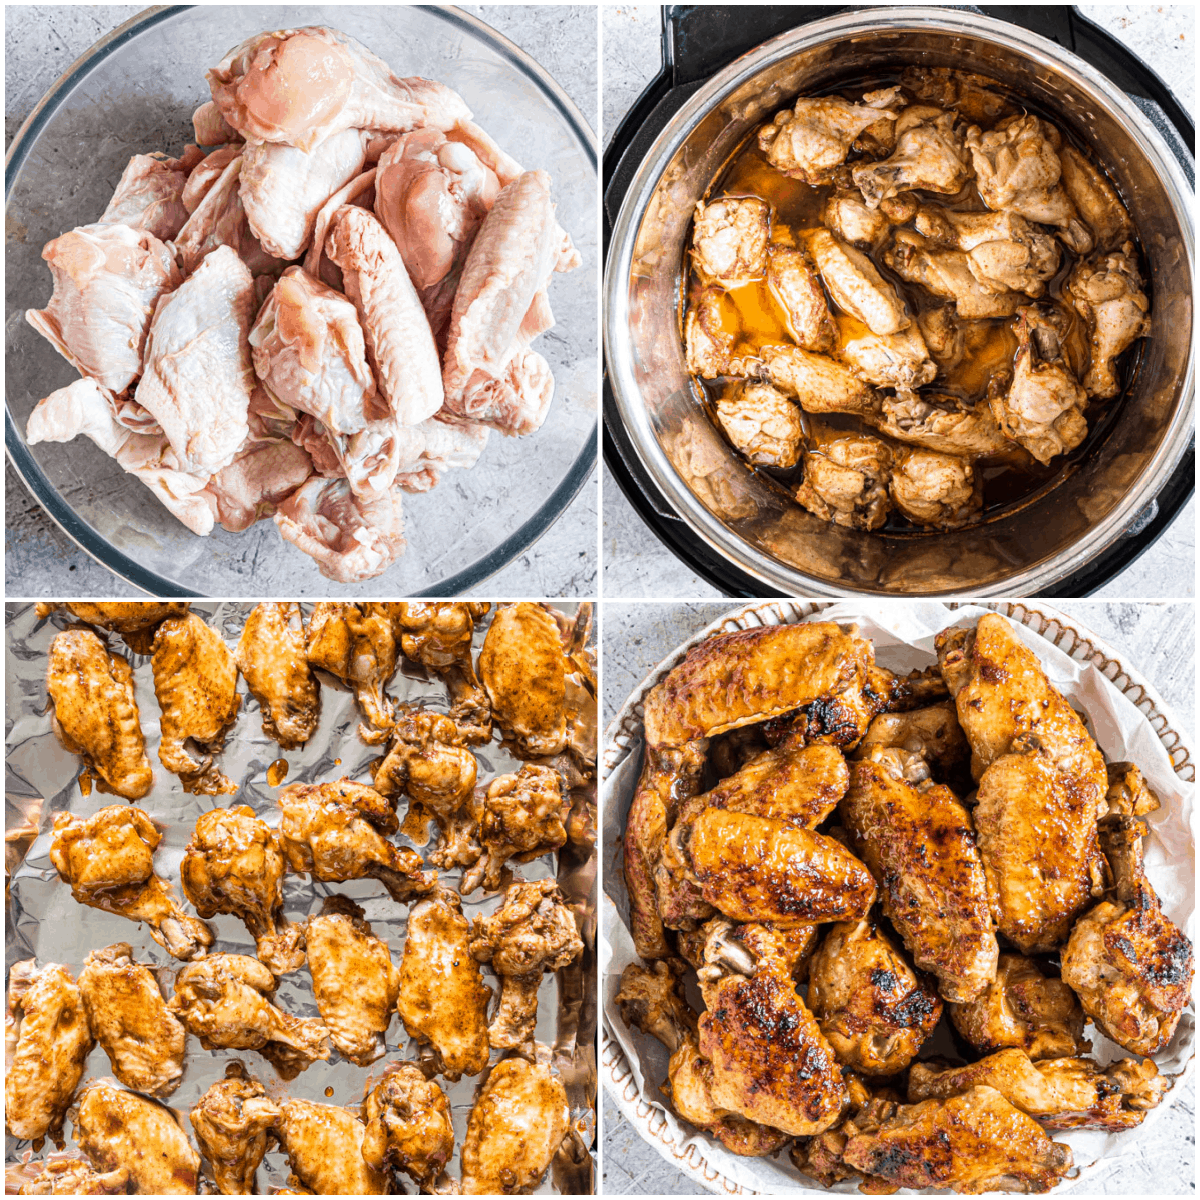 image collage showing the steps for making coca cola chicken wings instant pot